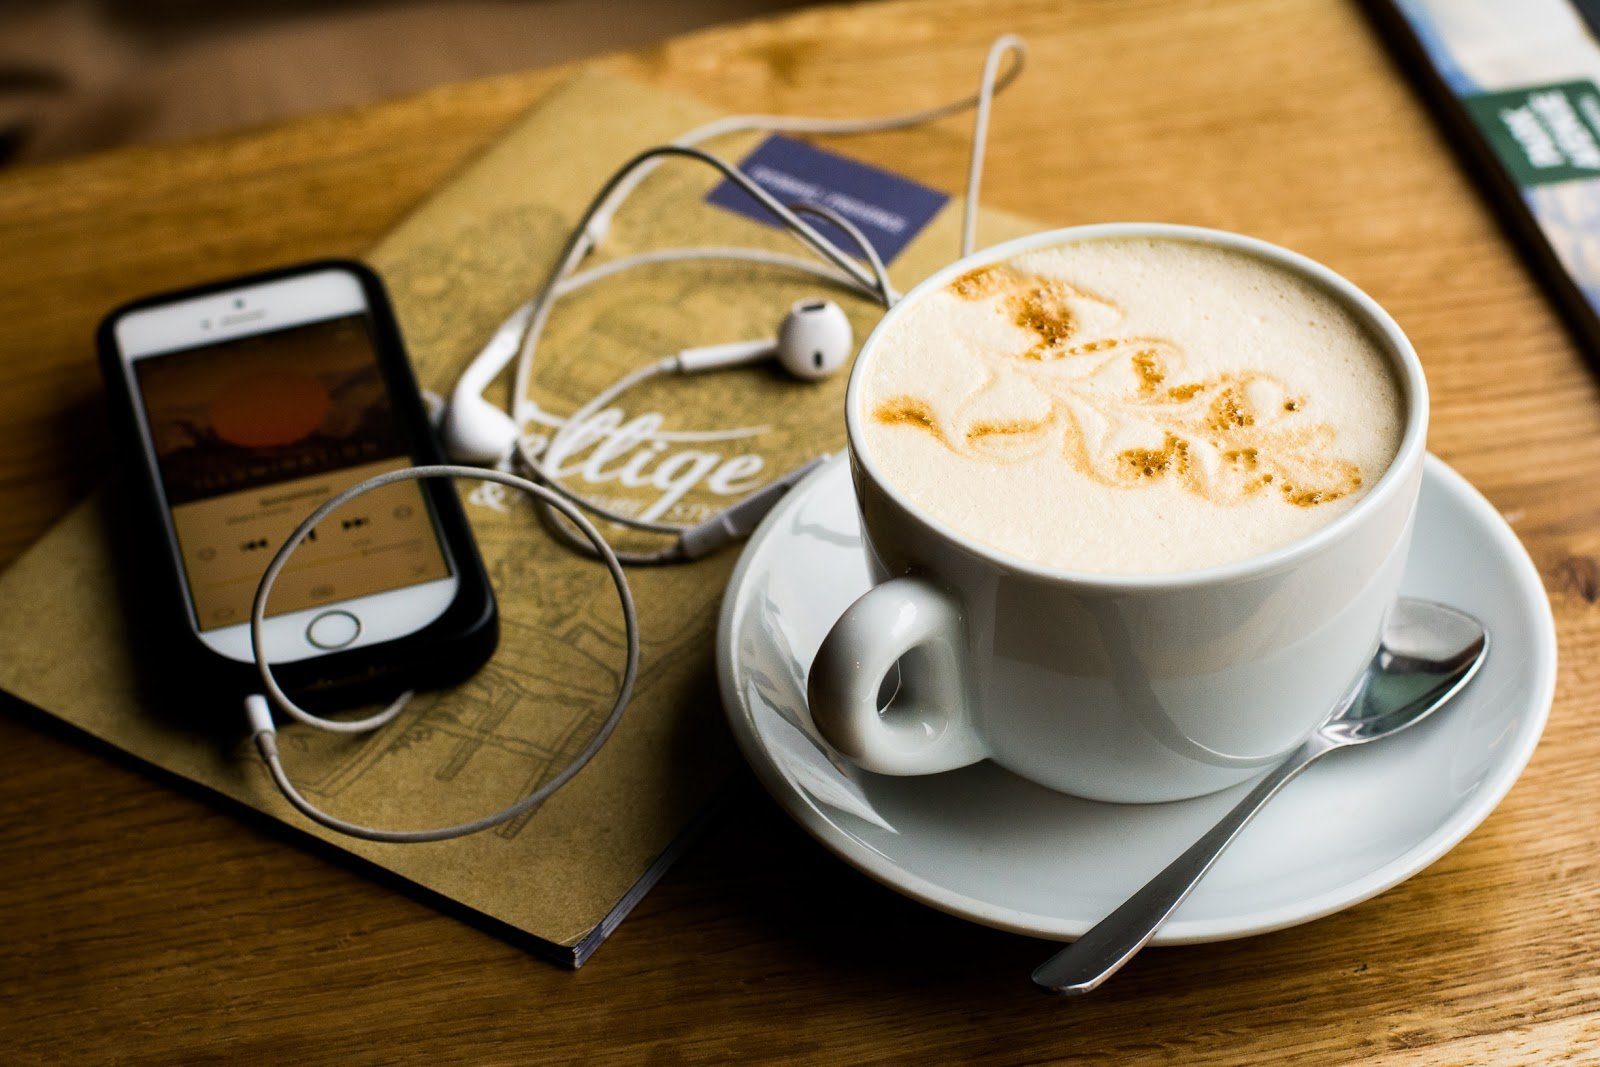 Preparing to using phone while drinking coffee